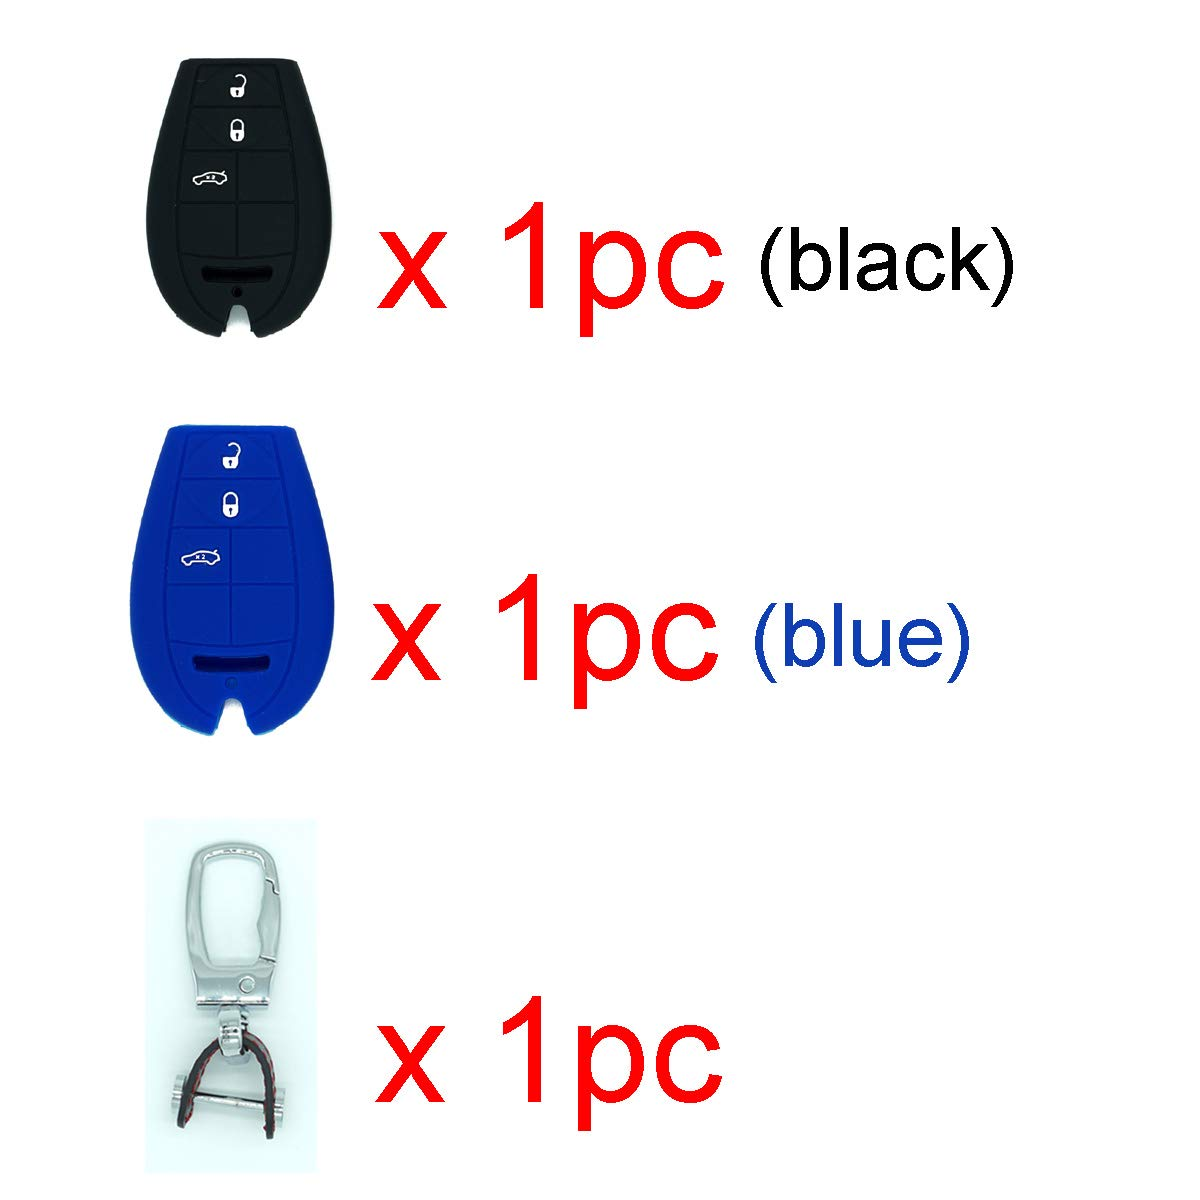 Royalfox 3 4 Buttons Silicone Smart Remote Key Fob case Cover Keychain for Dodge Ram Magnum Challenger Charger Durango Journey,Chrysler 300,Jeep Grand Cherokee Black and Blue case with 1 Keychain